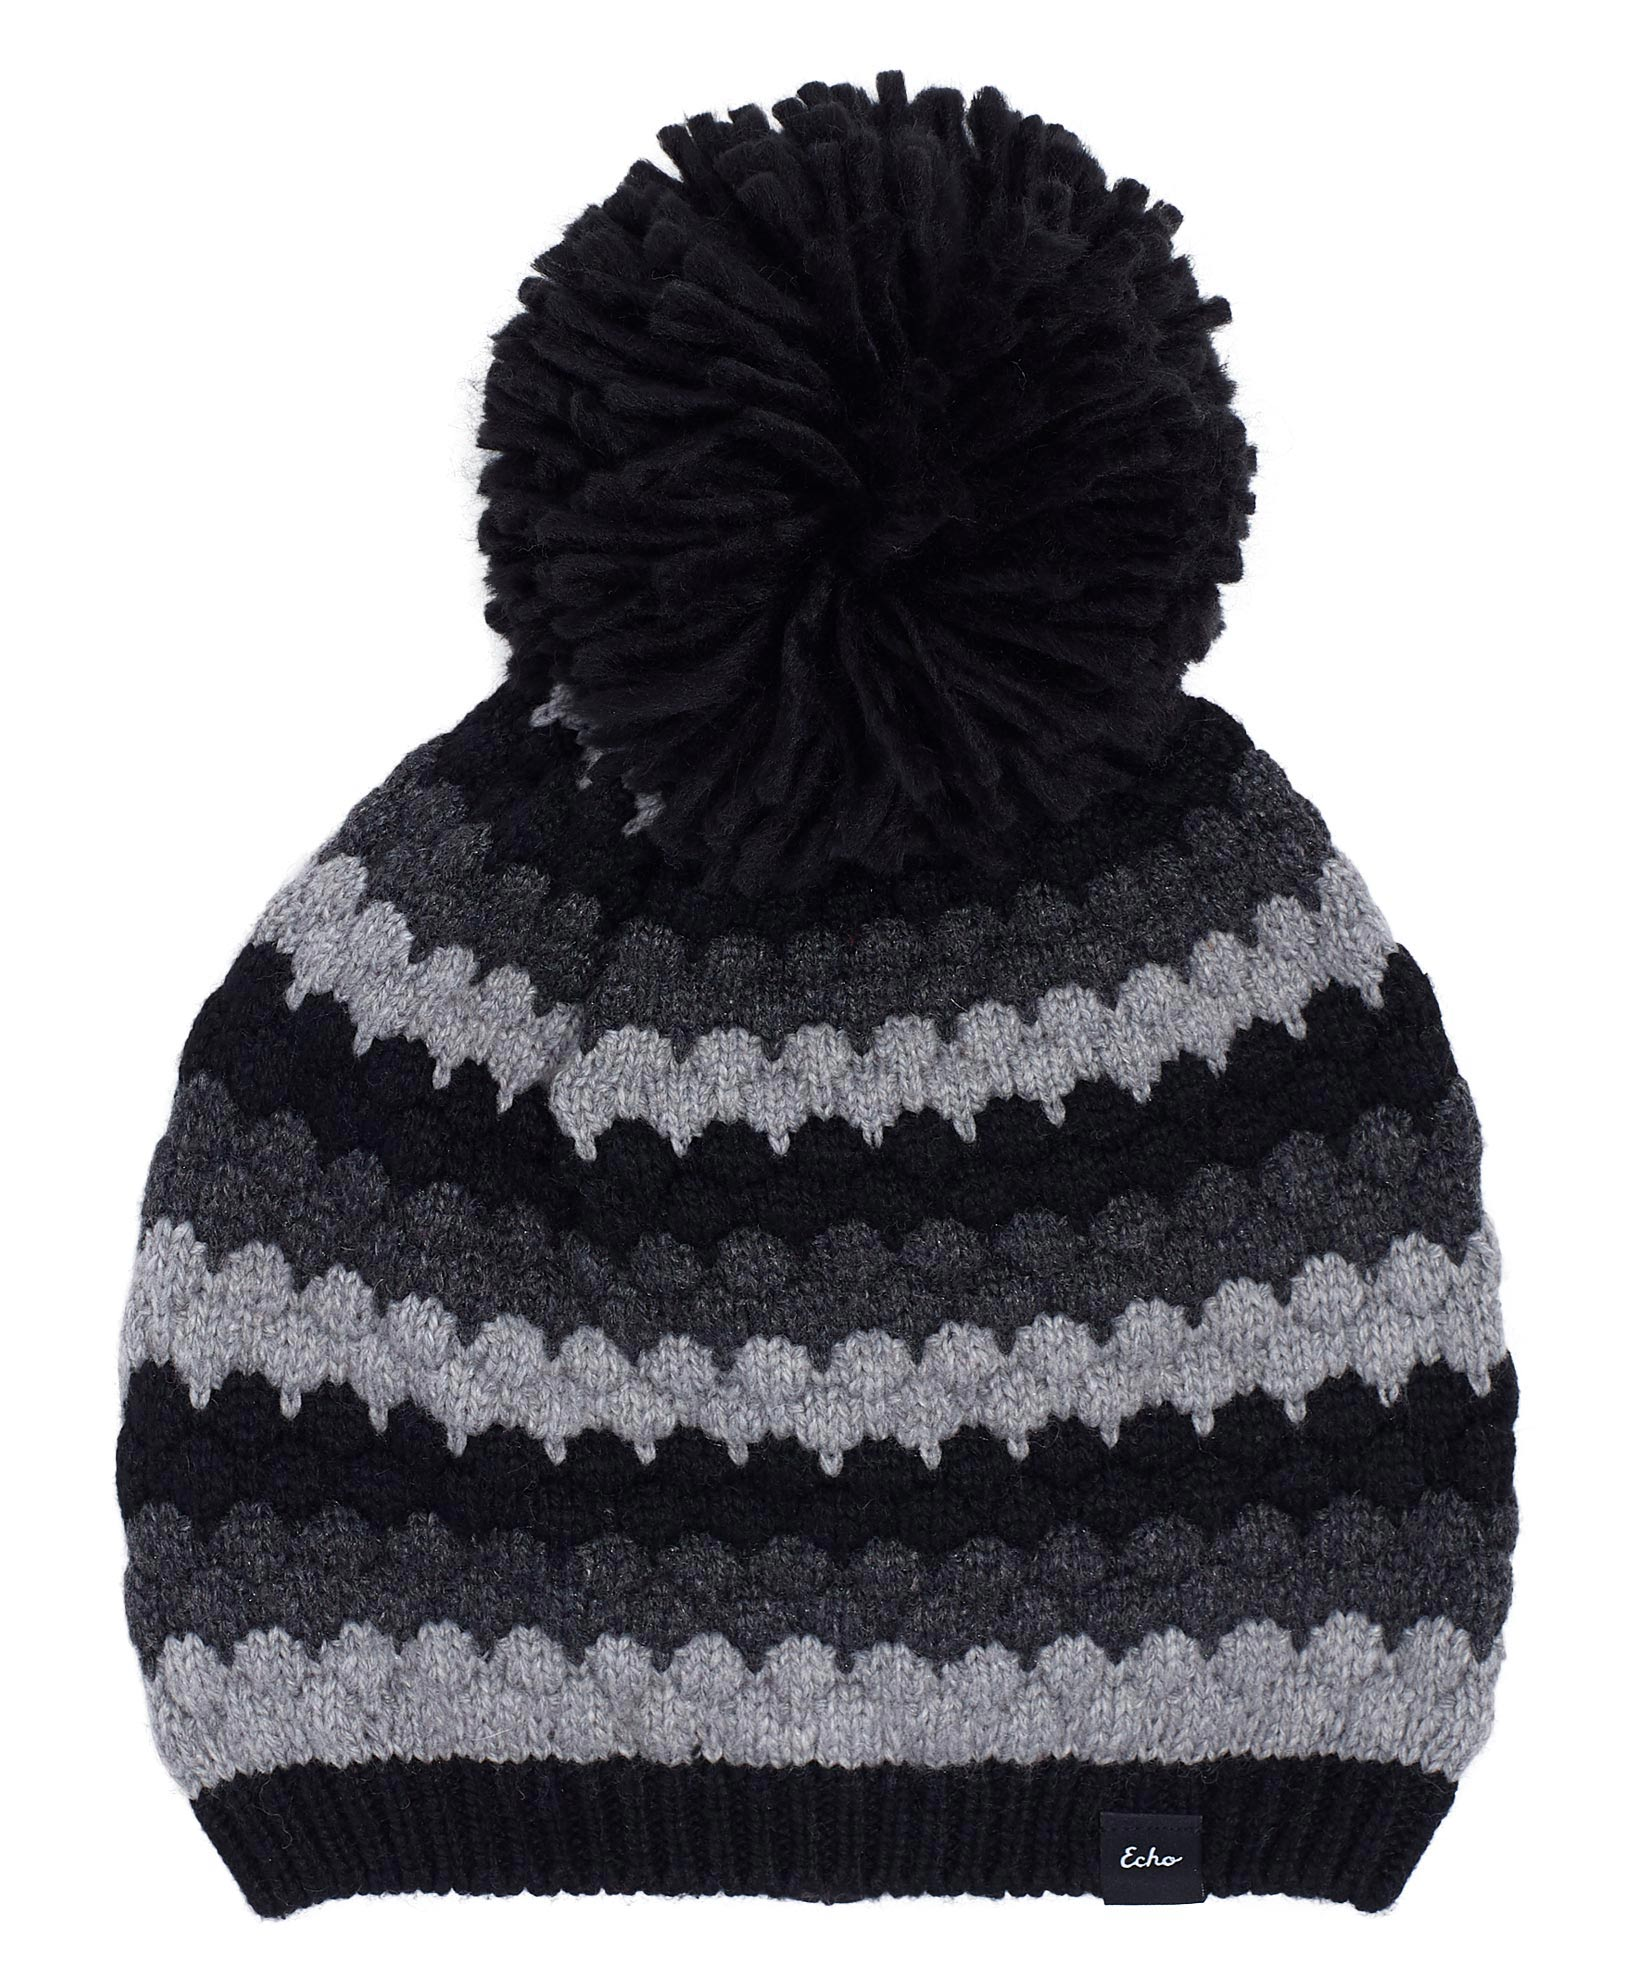 Black - Recycled Bubble Hat